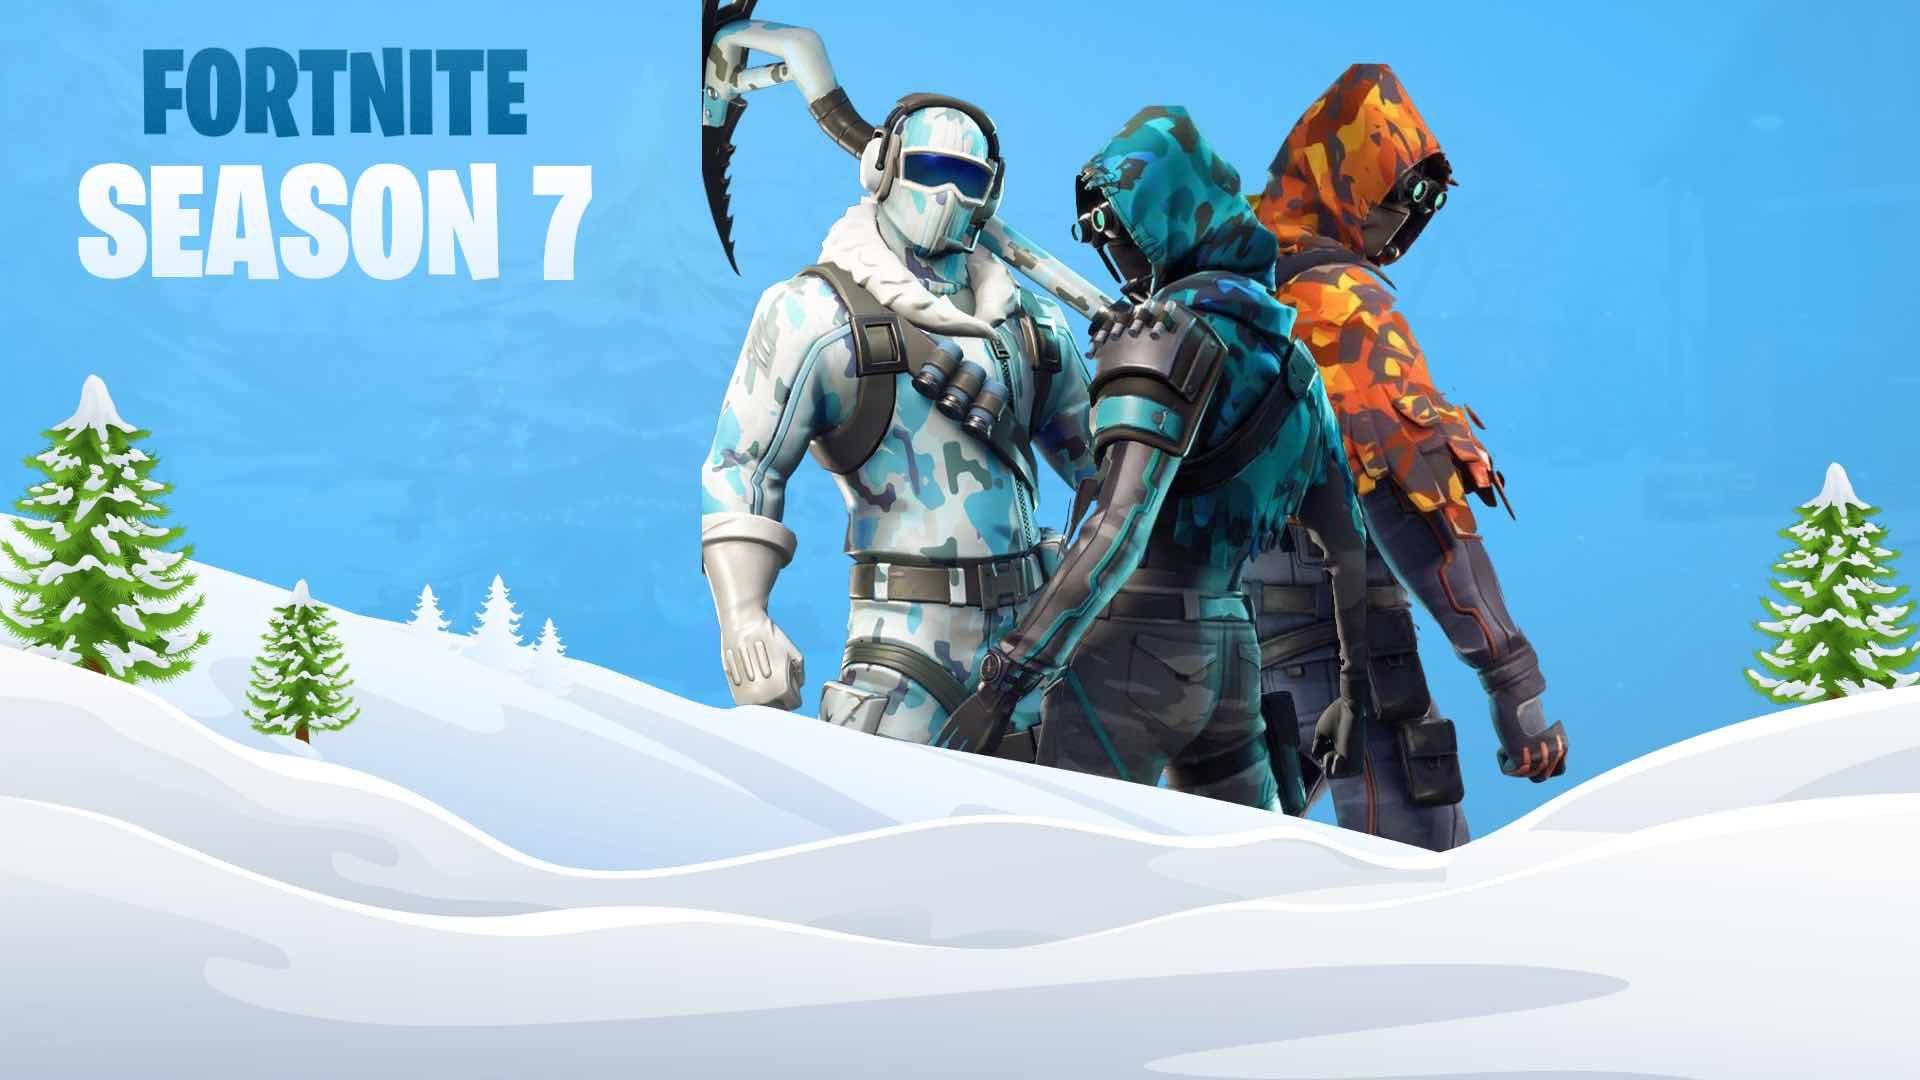 Fortnite Season 7 And Patch Note Details Are Here | GameSofa Entertainment